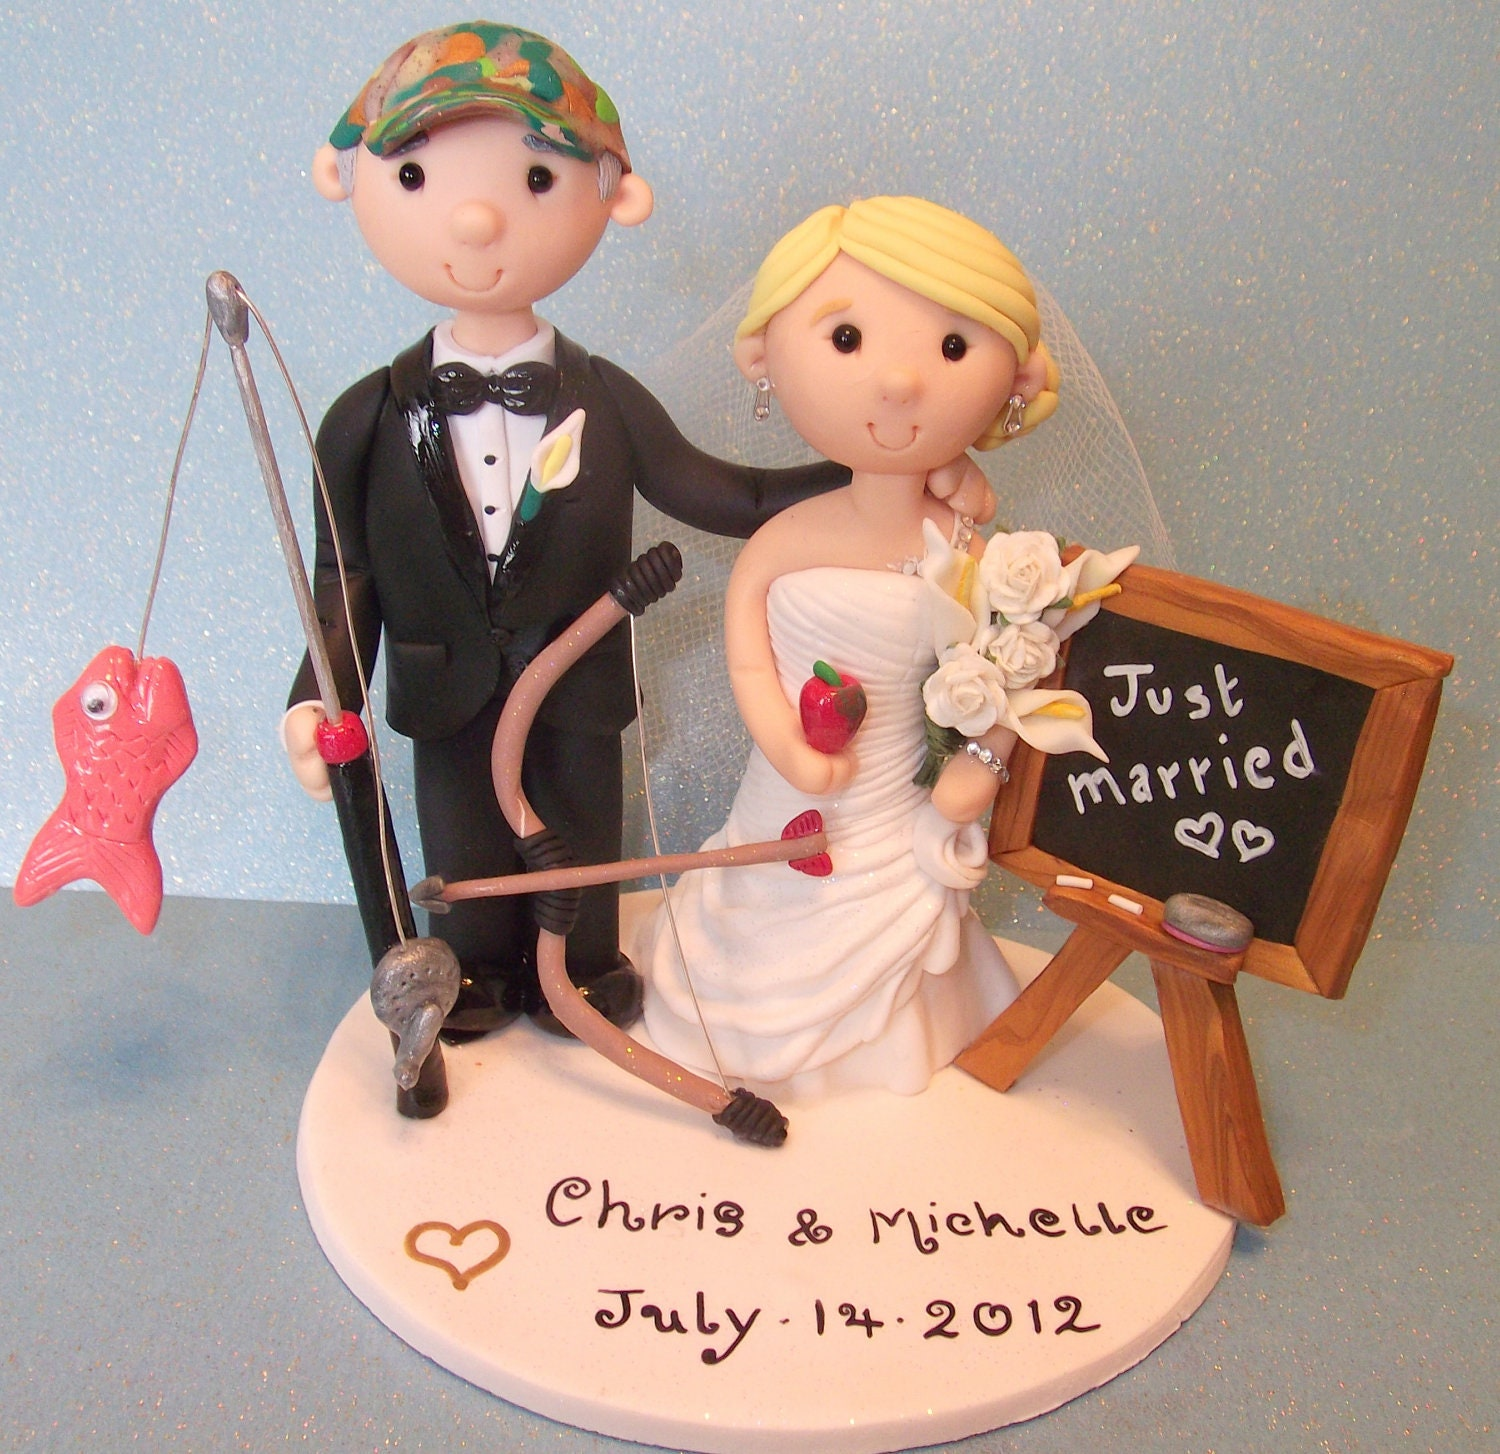 Wedding Cake Toppers: Custom Made Wedding Cake Toppers